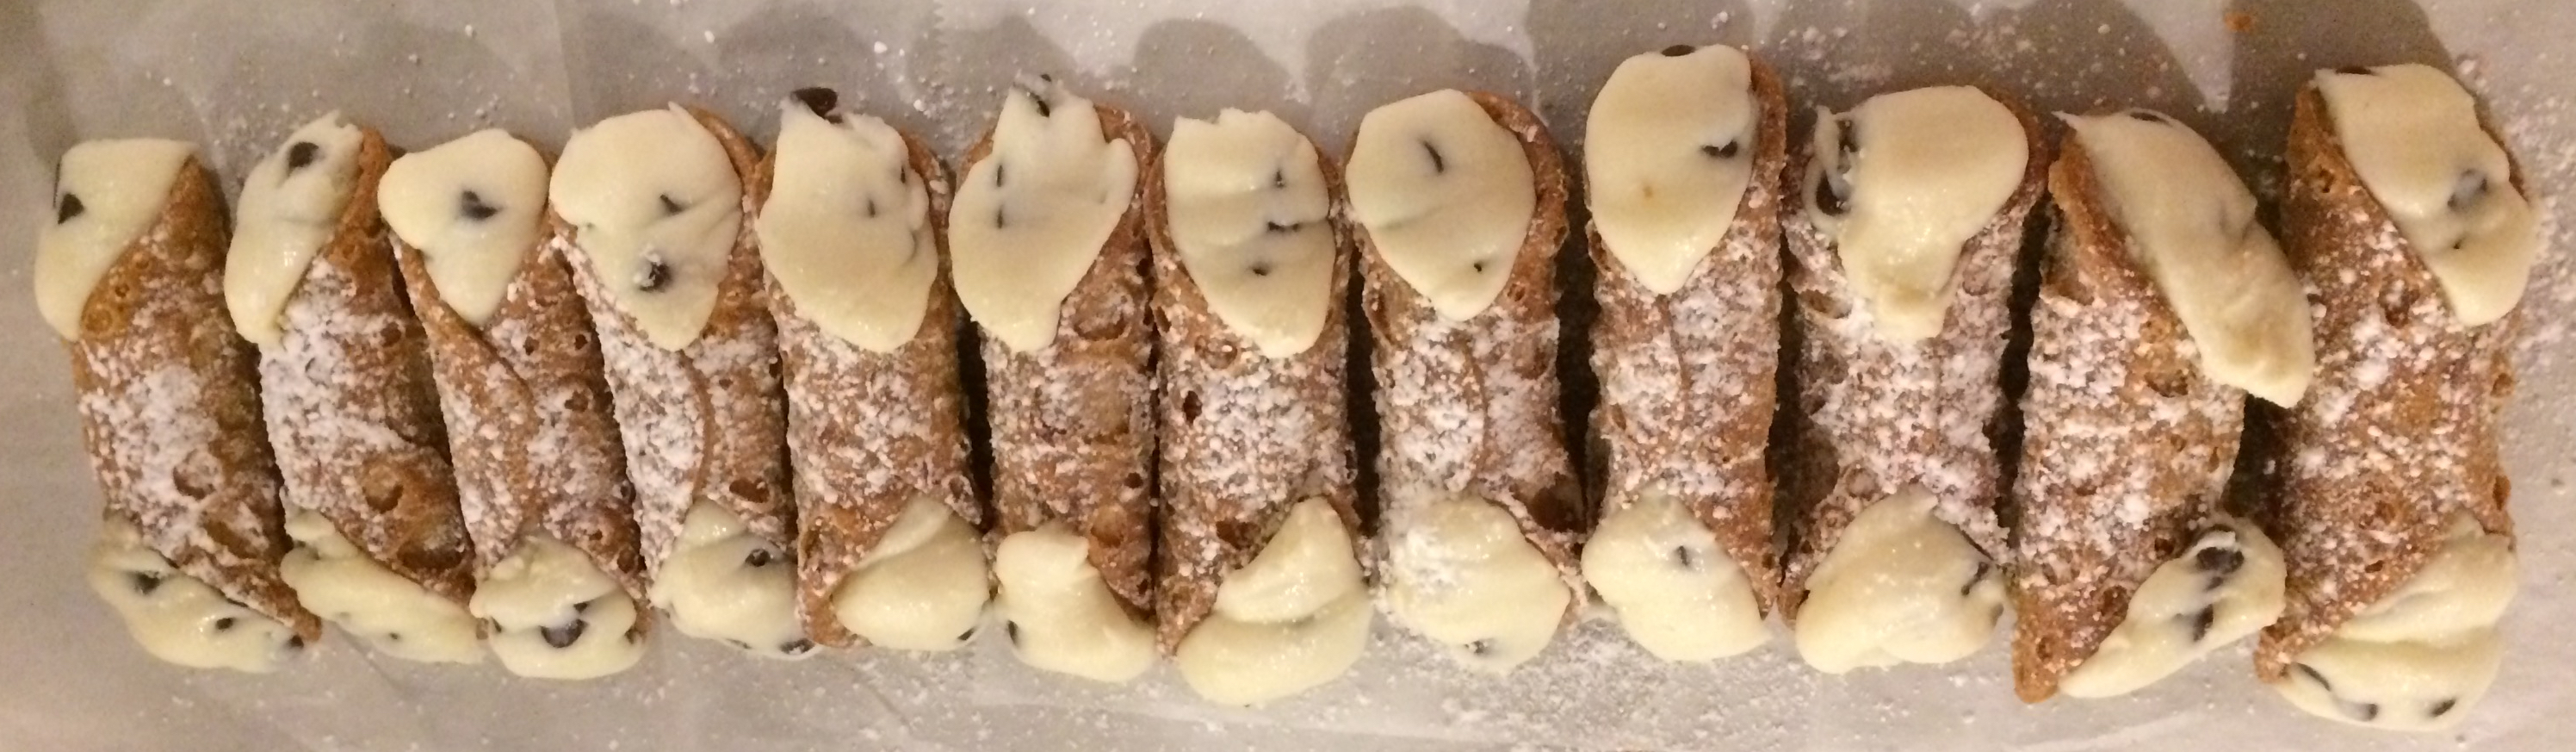 Cannoli World image 5